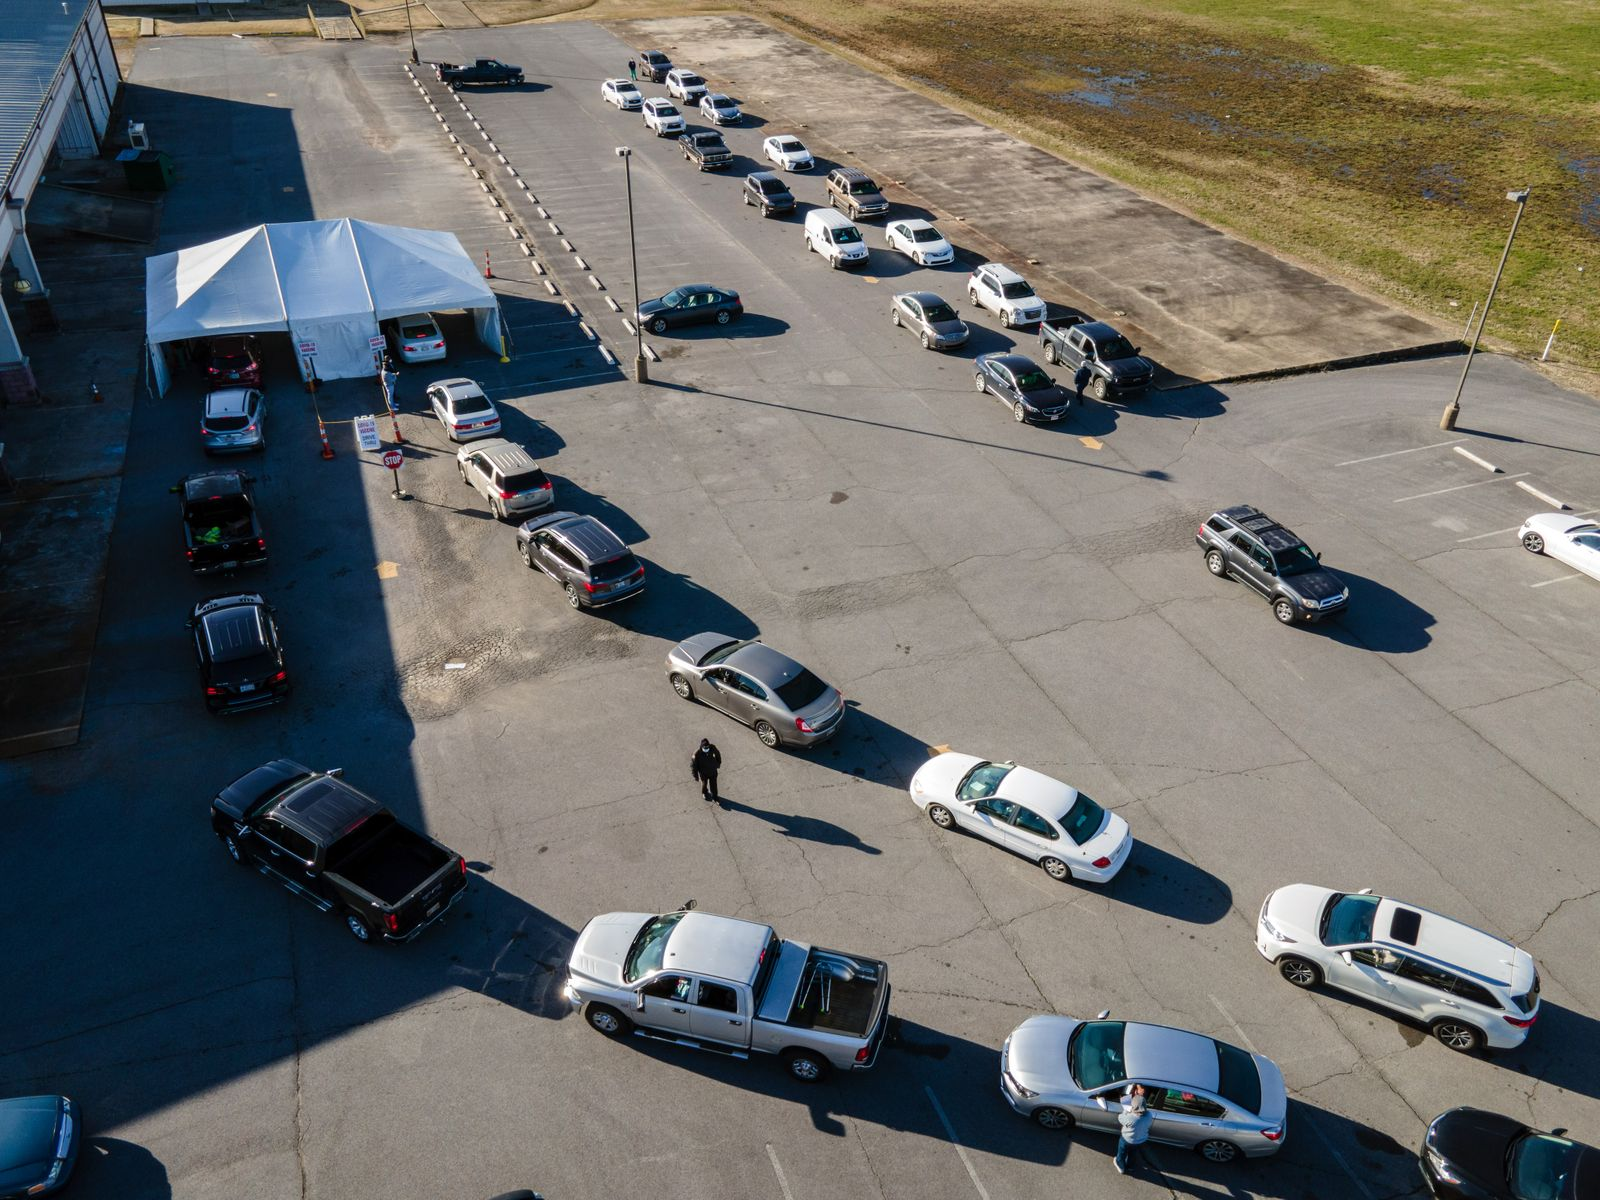 Covid-19 Vaccine Drive-Thru As Mississippi DOH Announces End Of State Supply